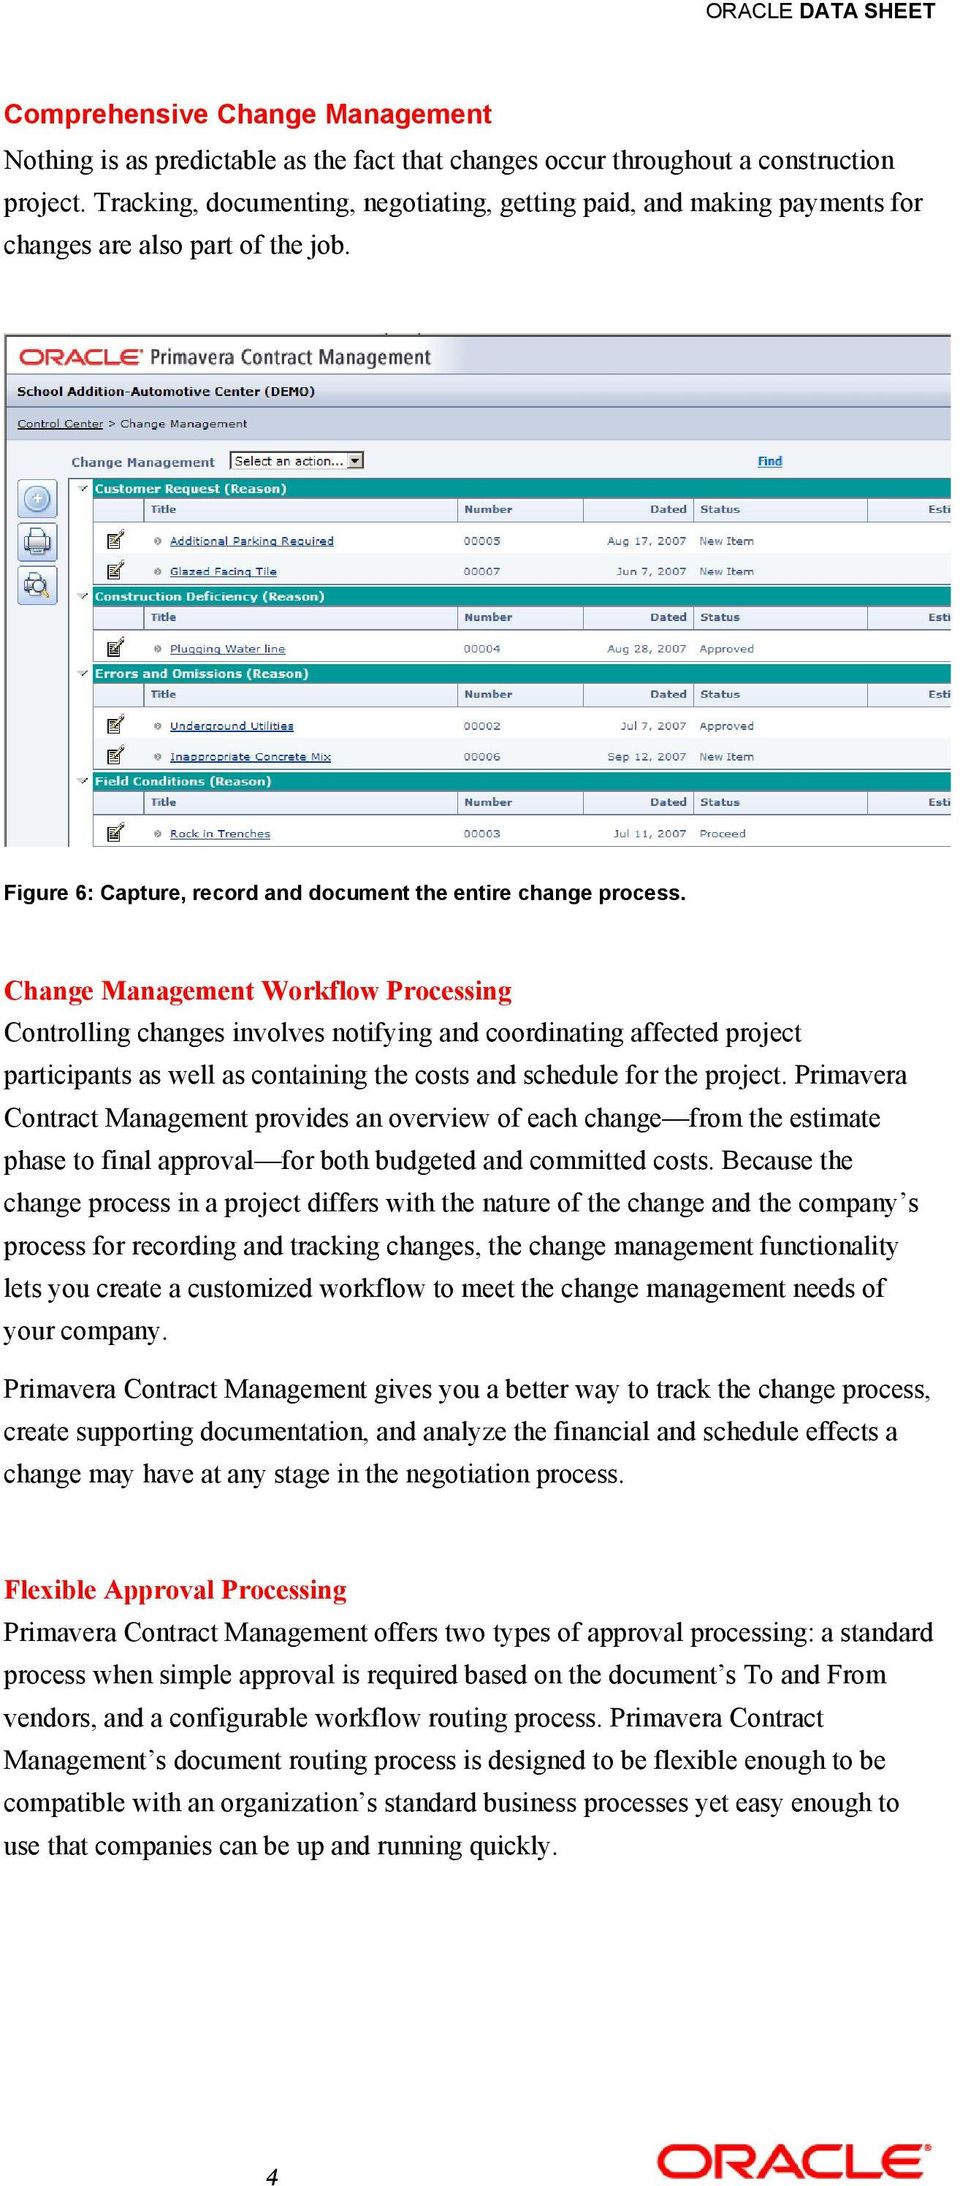 Change Management Workflow Processing Controlling changes involves notifying and coordinating affected project participants as well as containing the costs and schedule for the project.